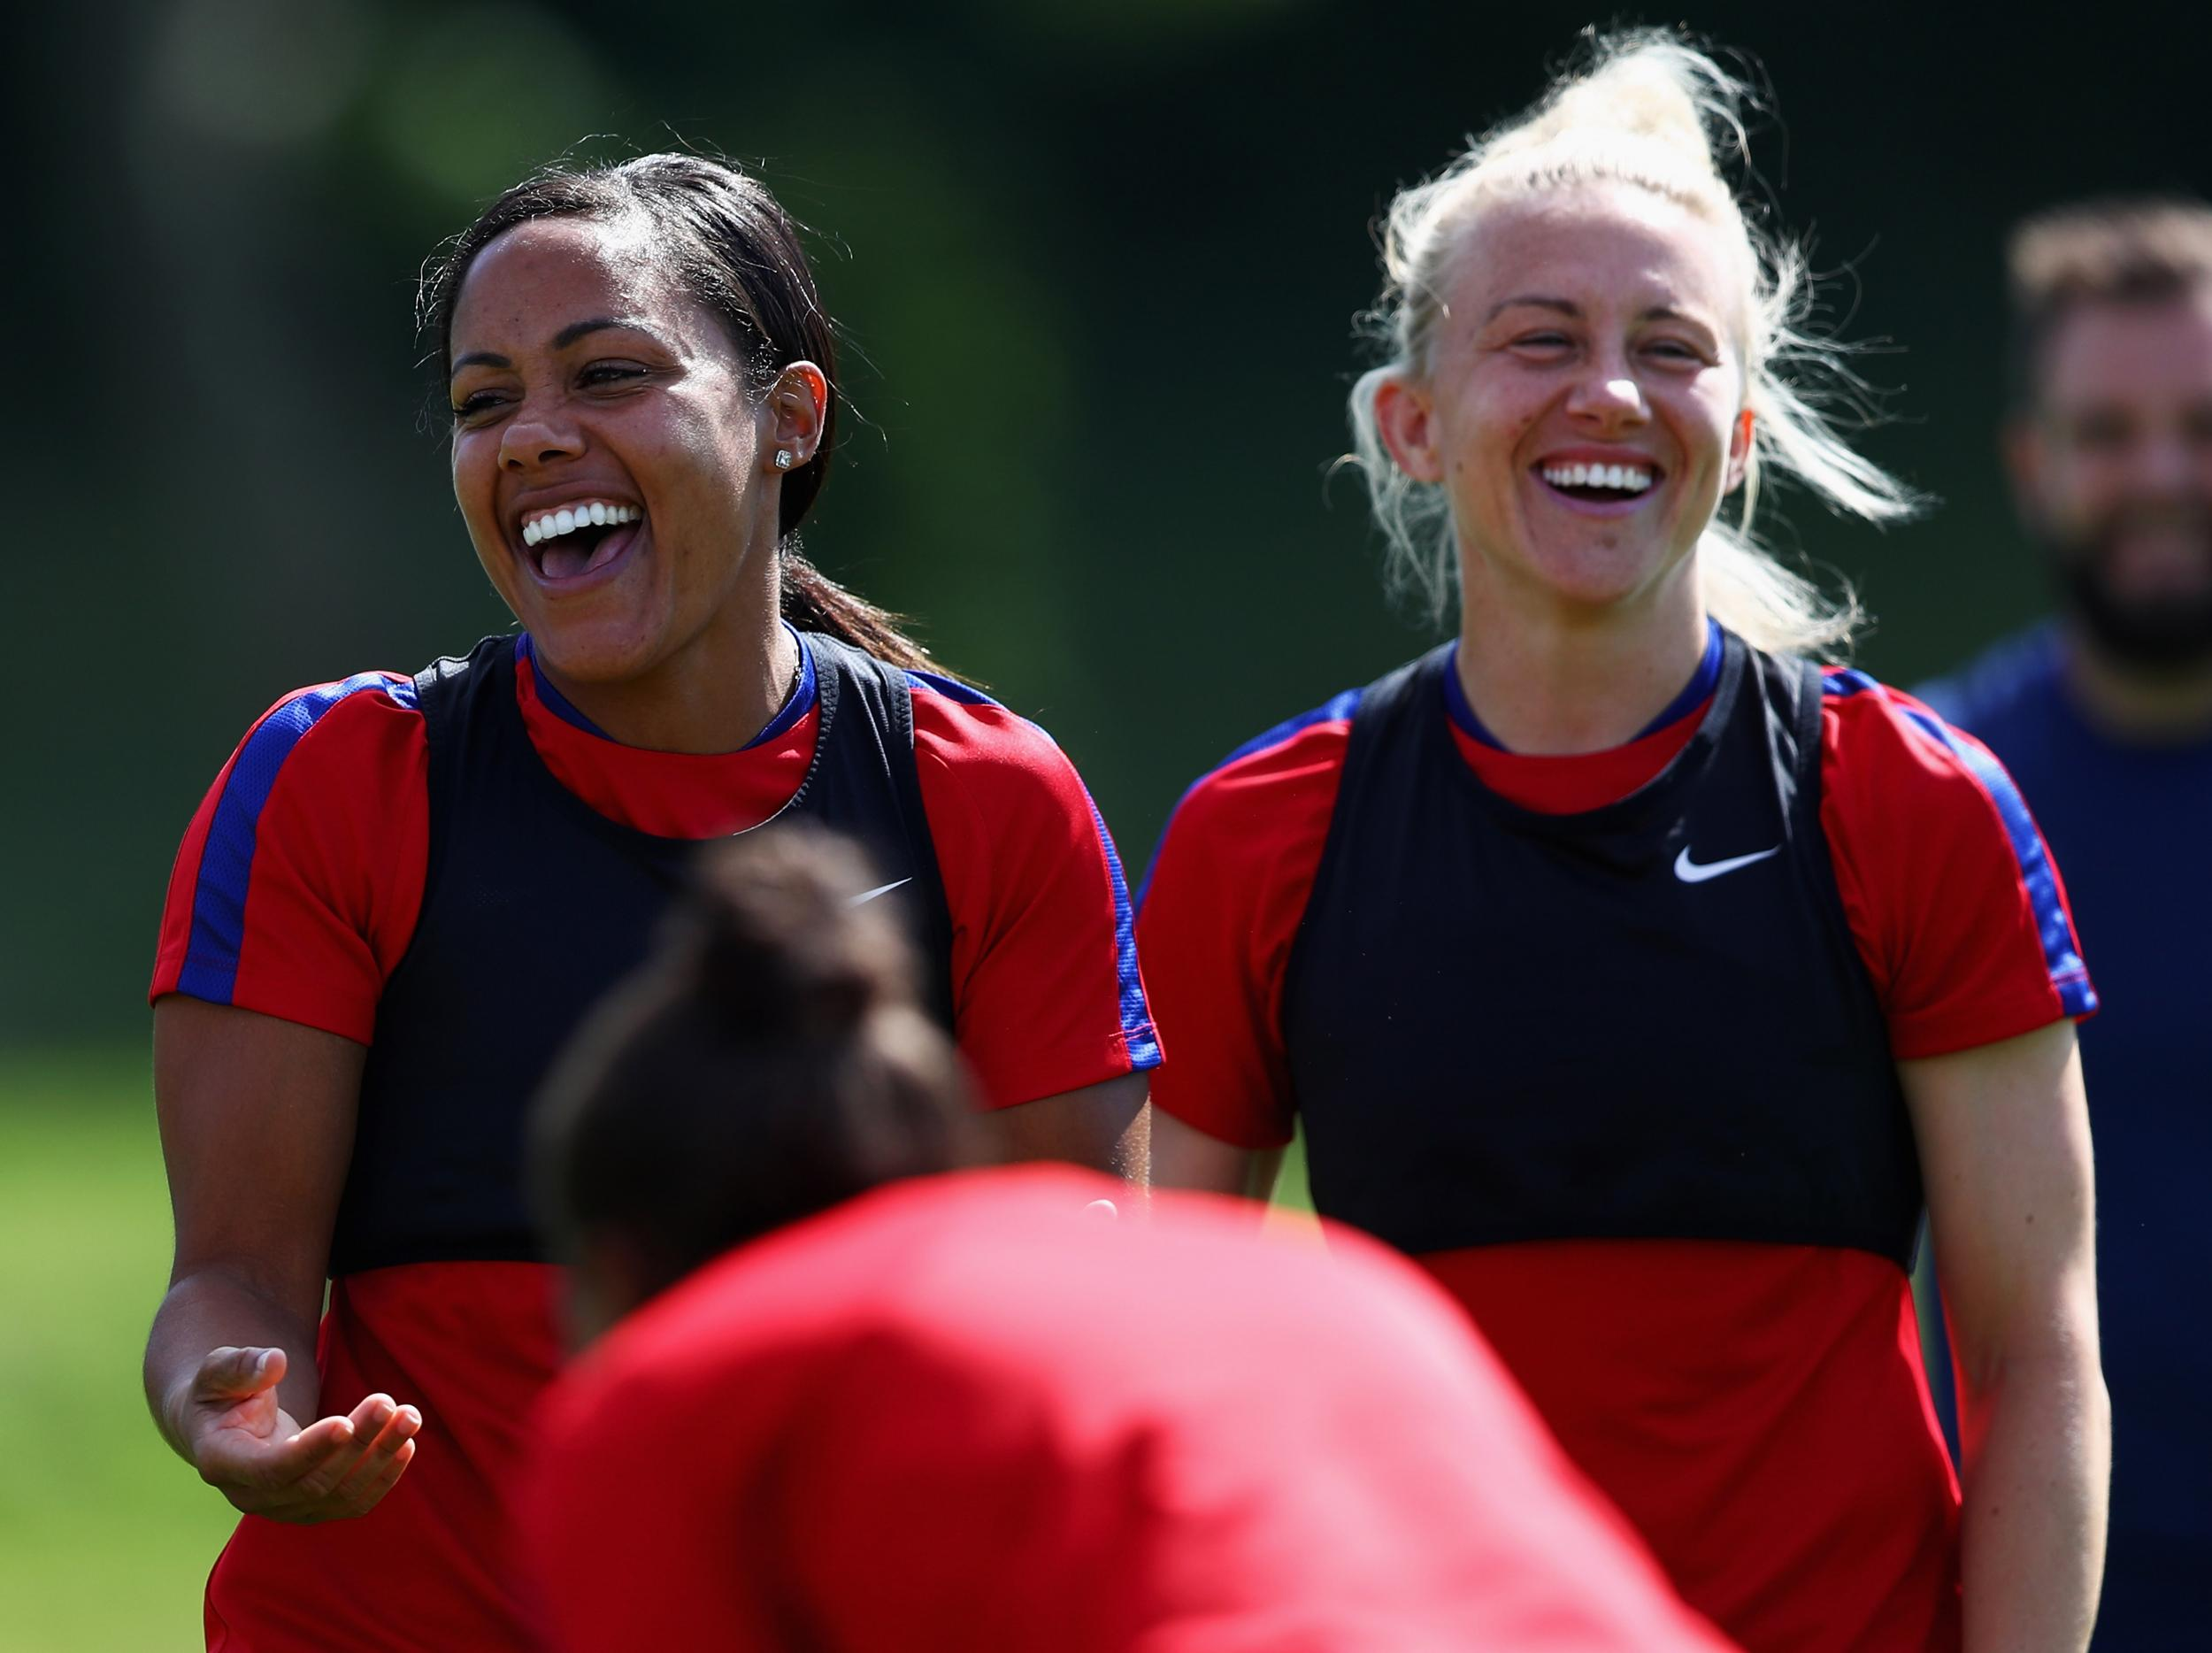 Women's Euro 2017: Jermaine Jenas backs England's Lionesses to avenge their World Cup heartbreak in Holland